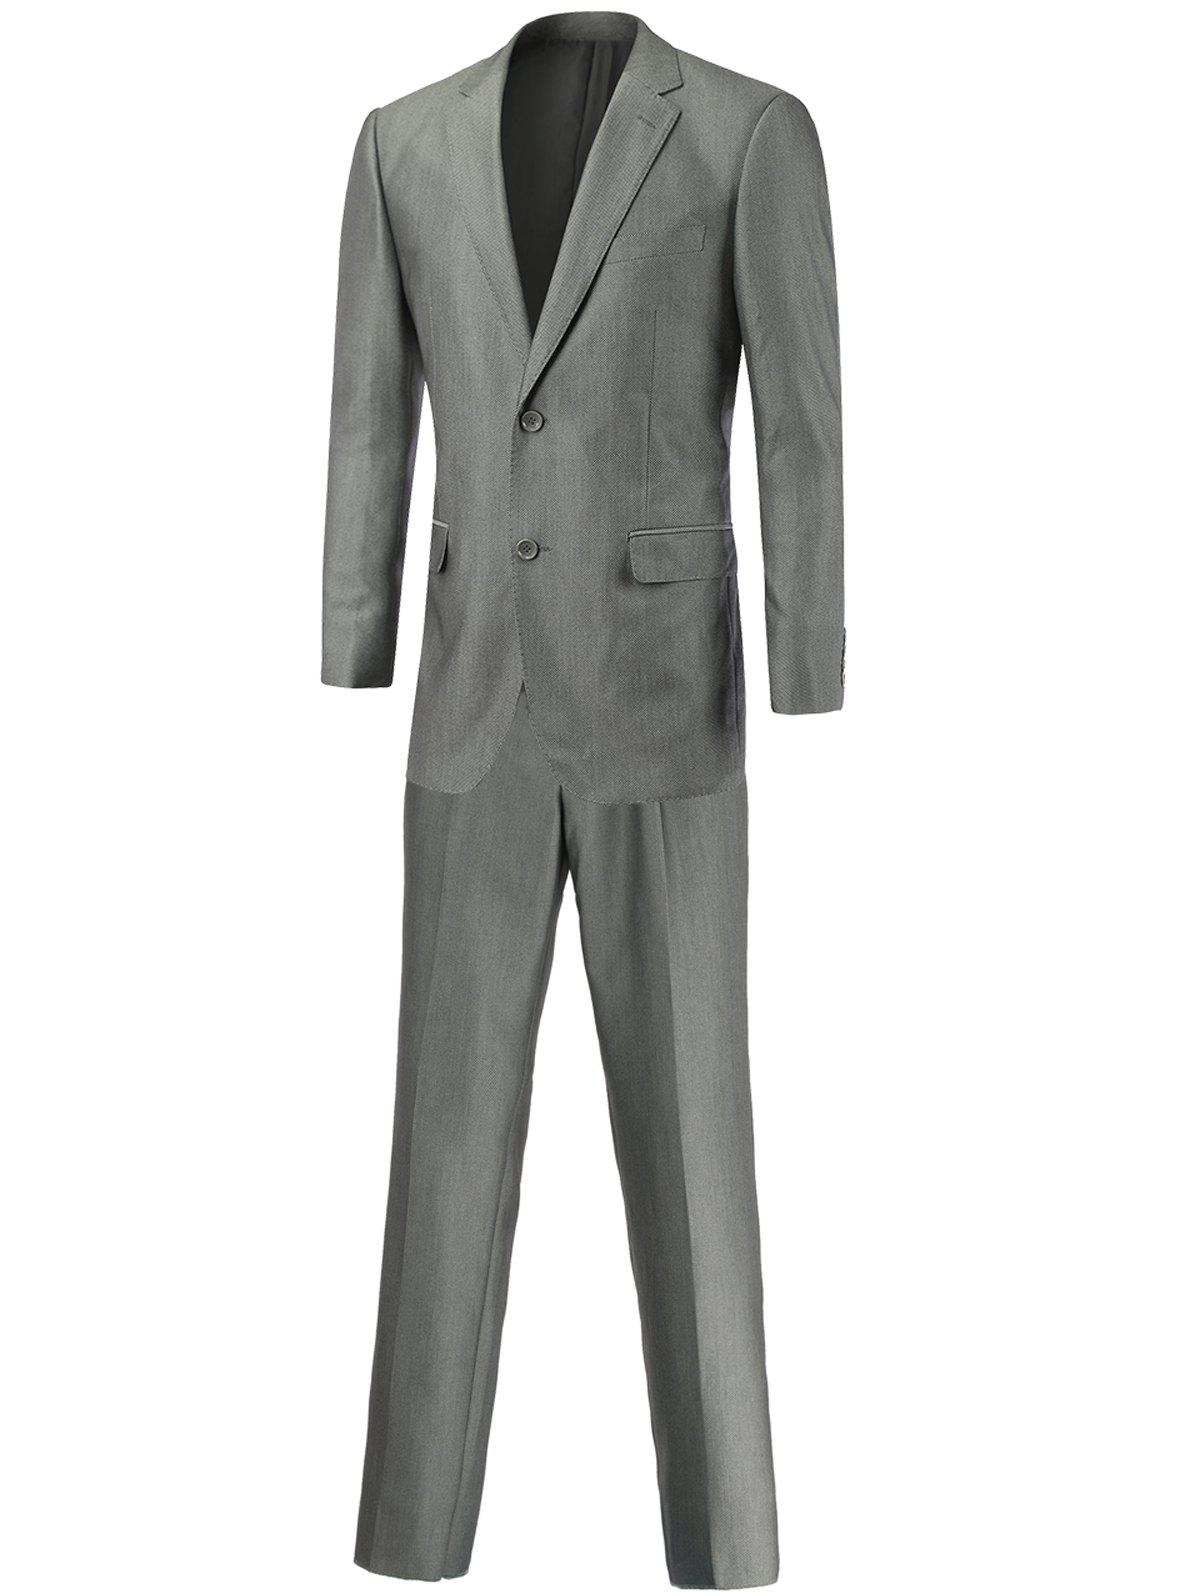 Slim-Fit Lapel Collar Flap Pocket Single Breasted Twinset SuitMen<br><br><br>Size: 3XL<br>Color: GRAY